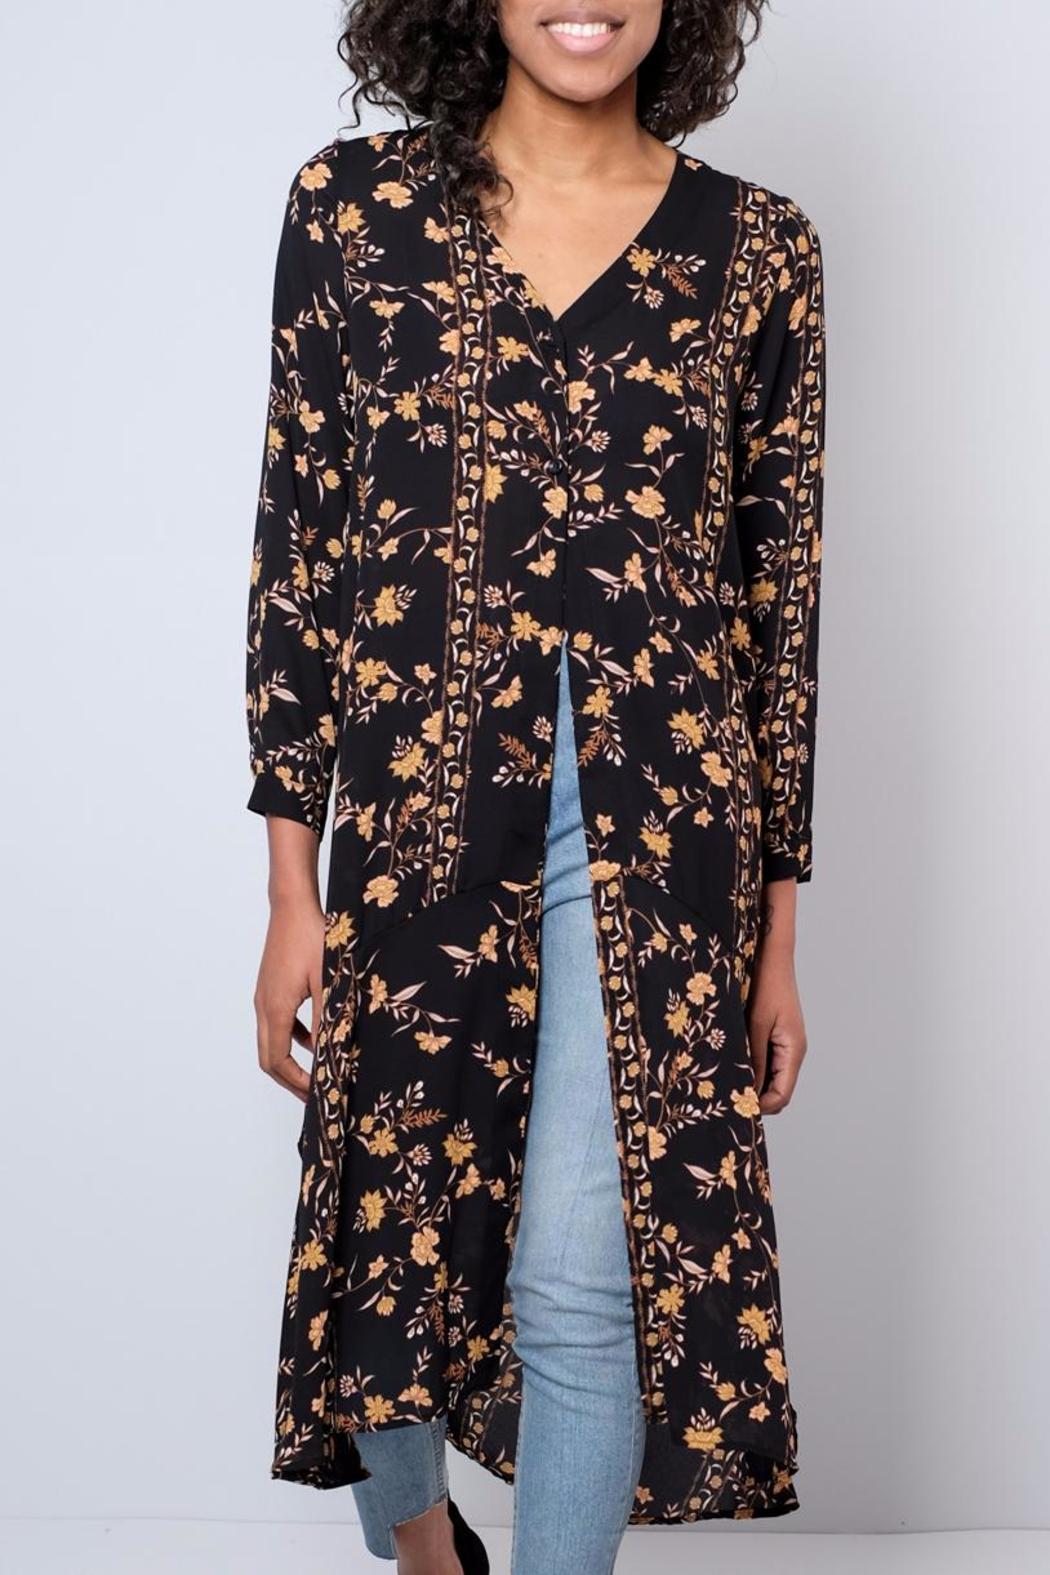 Audrey 3+1 Long Floral Shirt - Main Image